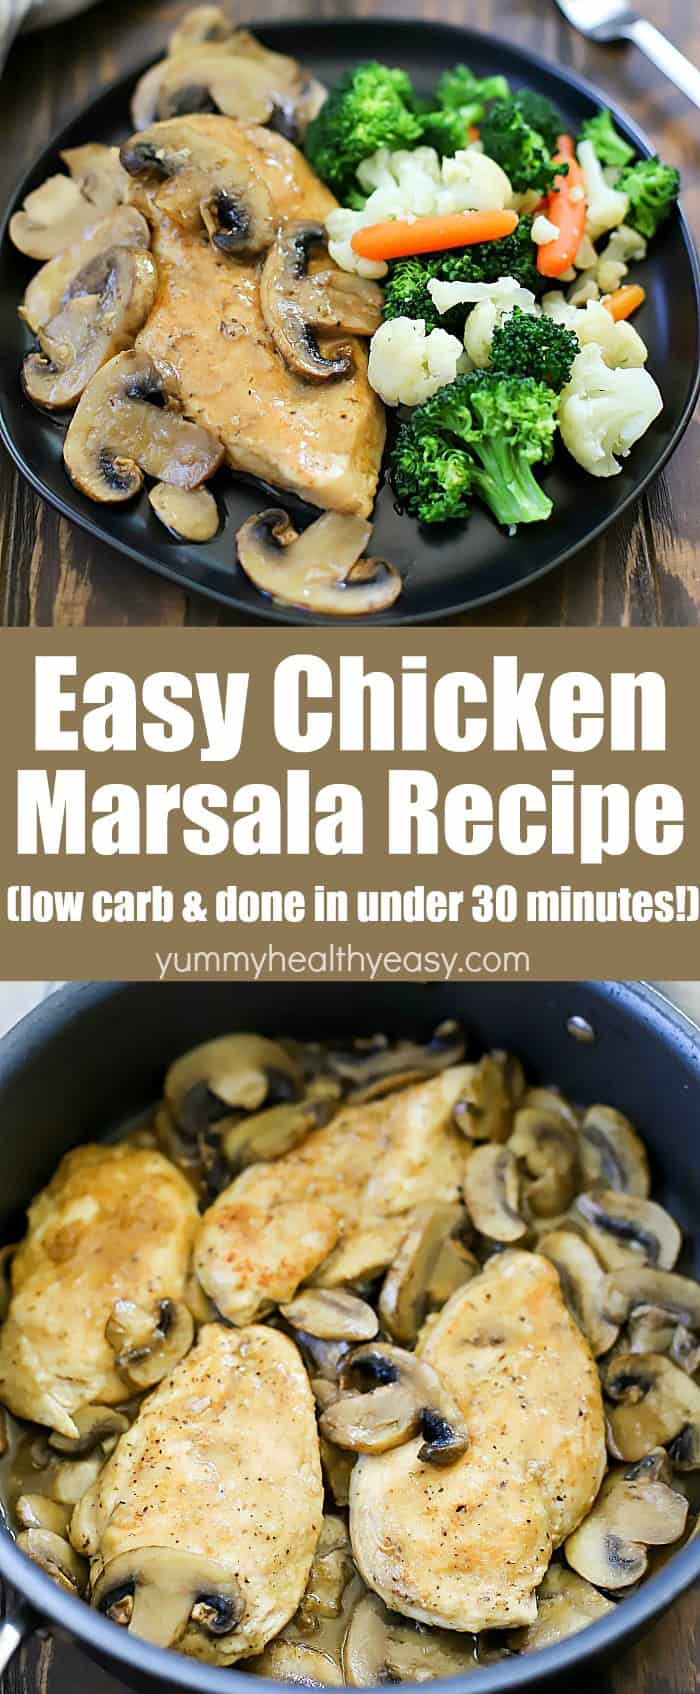 This Easy Chicken Marsala Recipe is one of my favorite low carb recipes! It's so easy to make and is done in under 30 minutes. Can you believe that?! The chicken is super flavorful and juicy, too. You won't even believe this dinner recipe is homemade and not from a restaurant! #dinner #recipe #chicken #chickenmarsala #marsala #30minutedinner #easyrecipe #easydinner #lowcarb #healthy #fewingredients